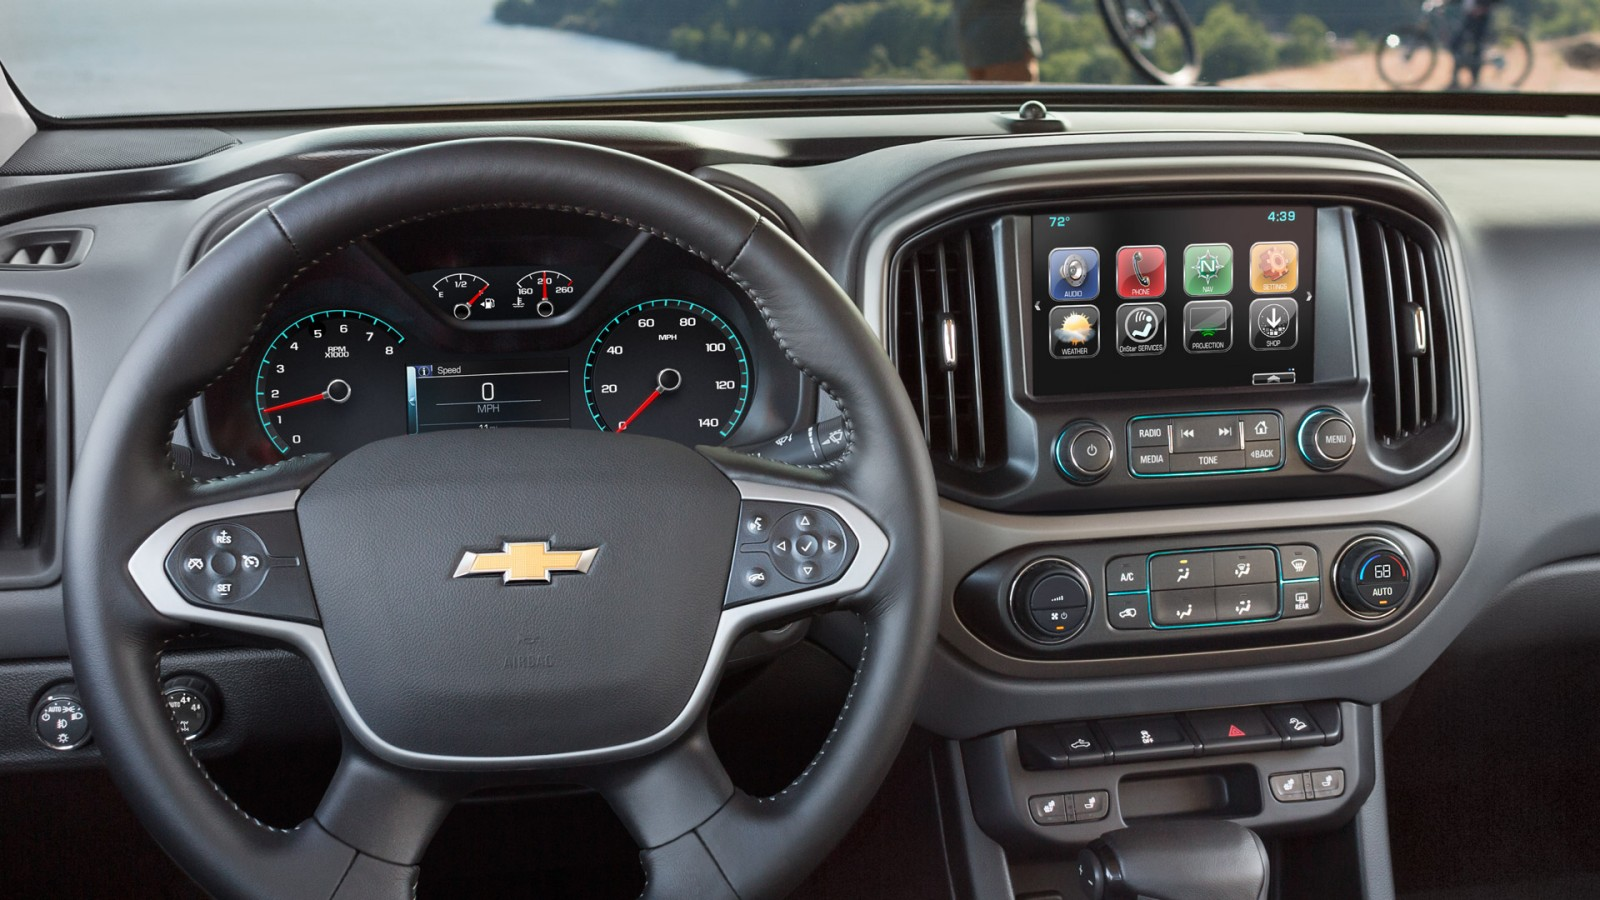 2017 Chevrolet Colorado Touchscreen